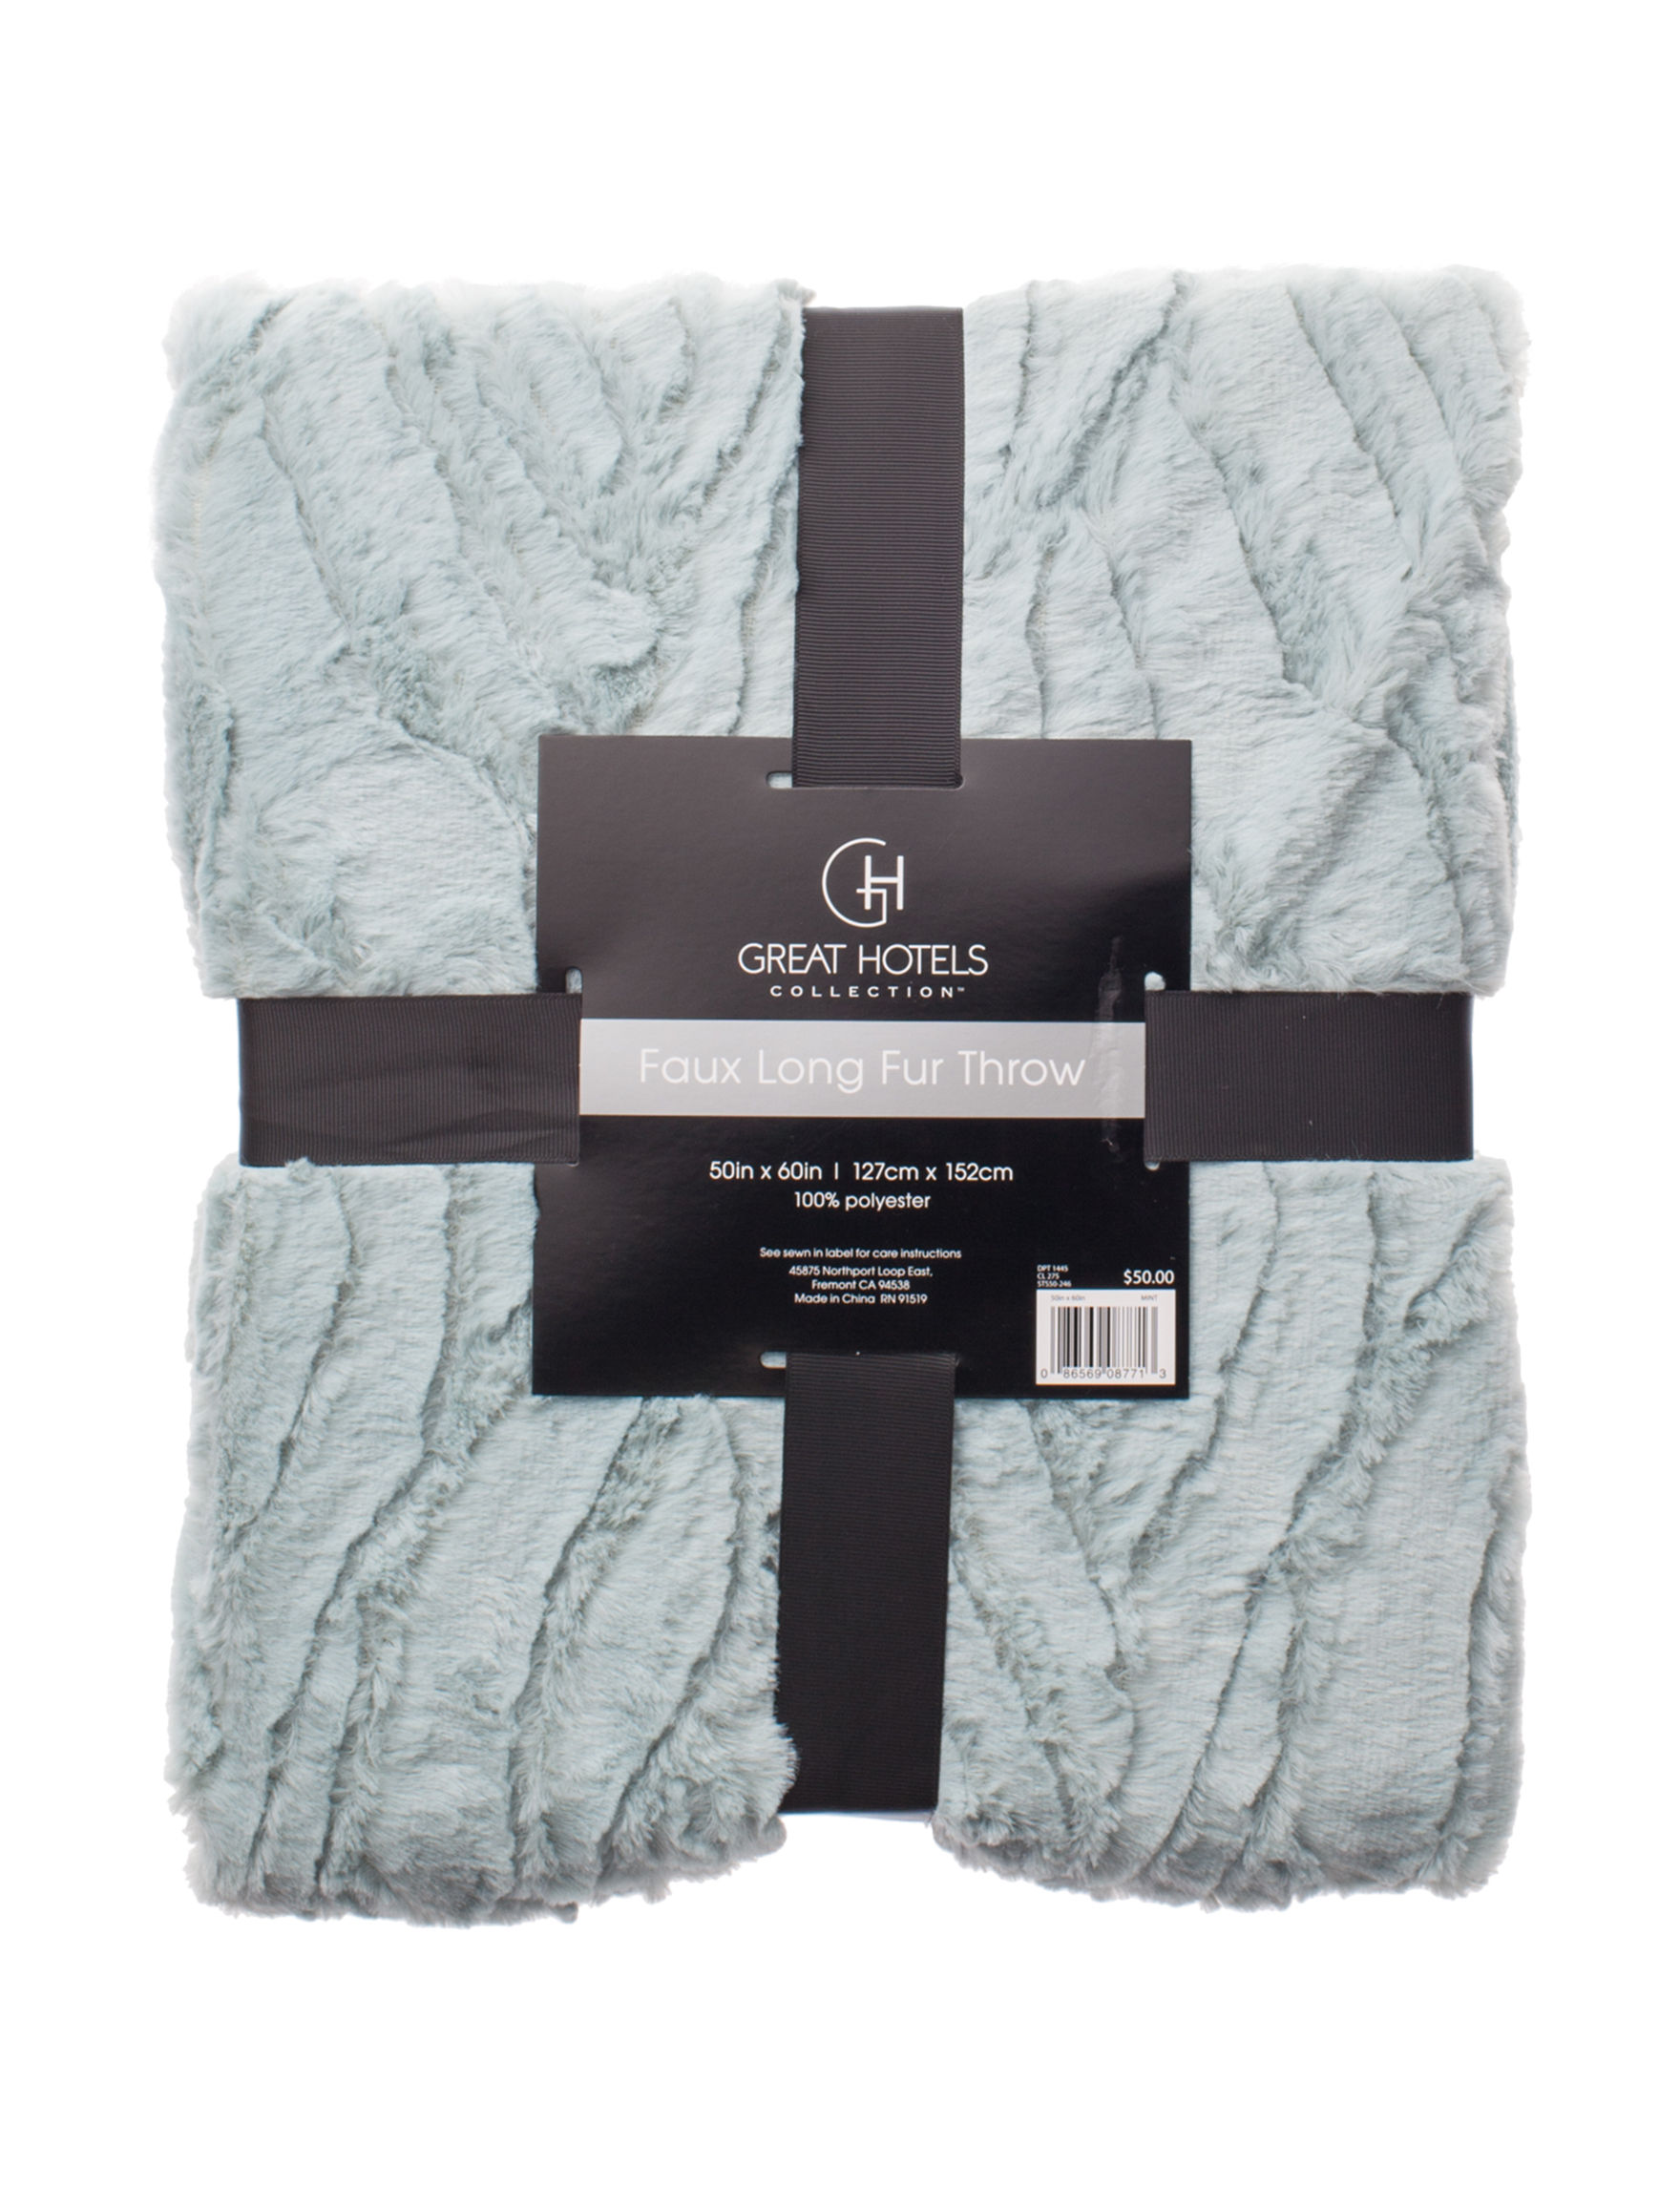 Great Hotels Collection Mint Blankets & Throws